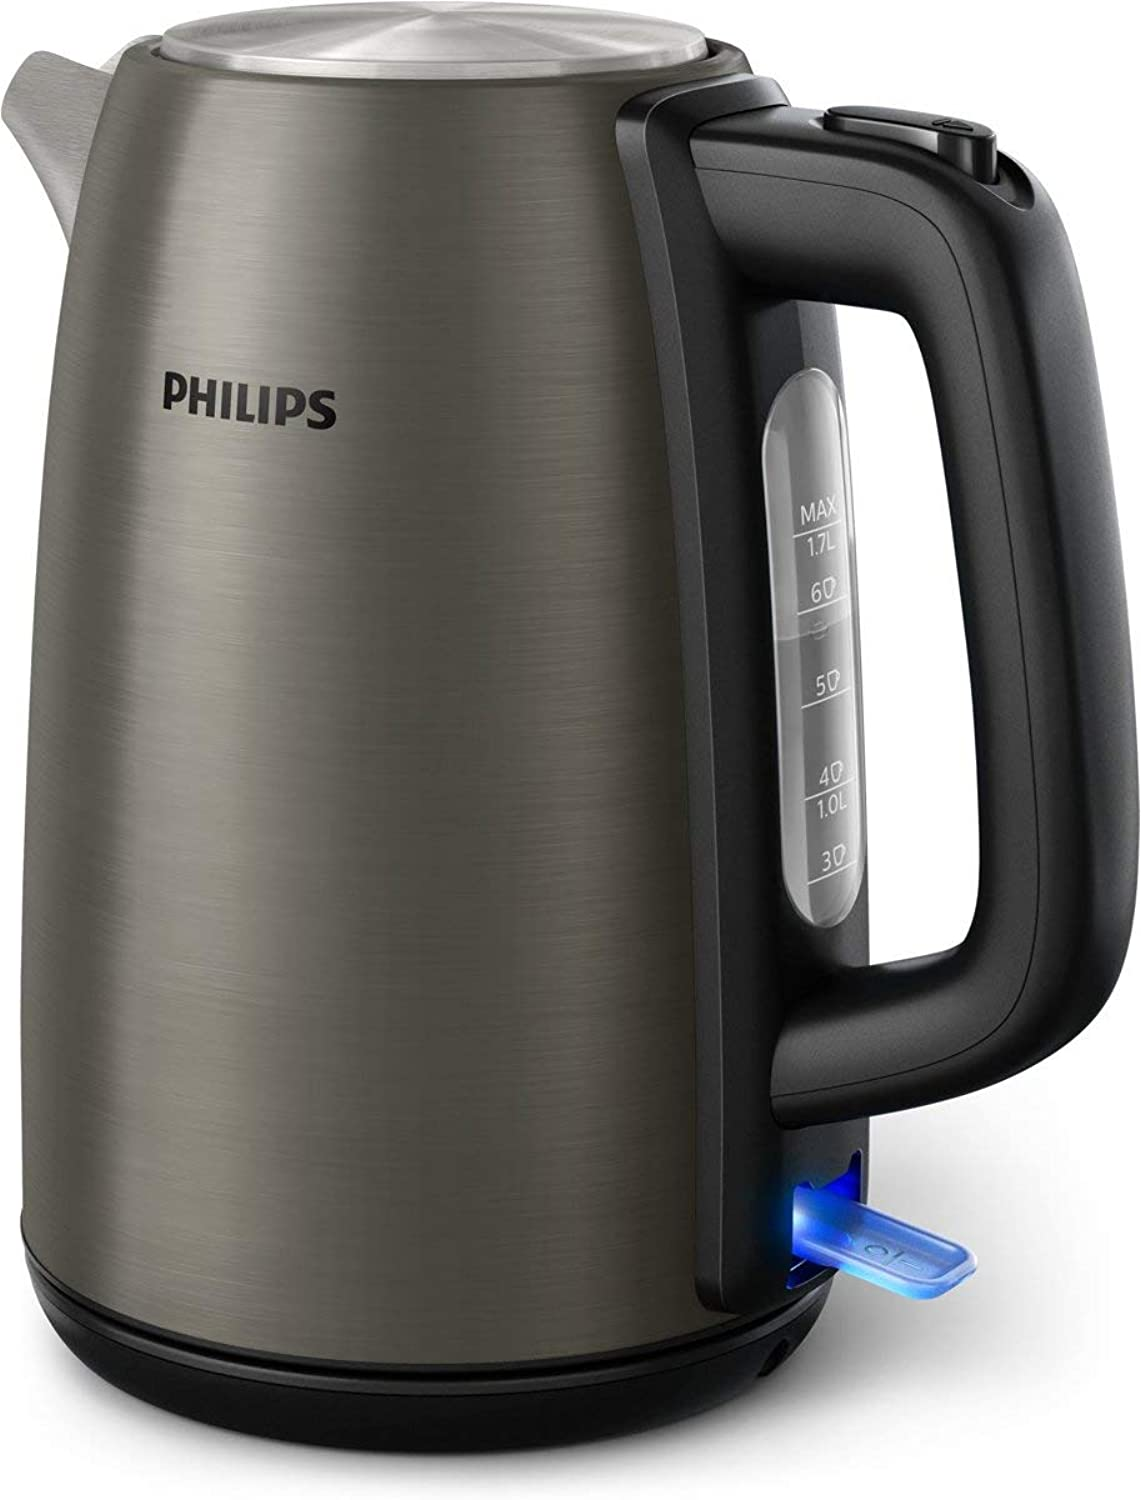 Philips Daily Collection hd9352 80, 2200, 1.7 liters, titan